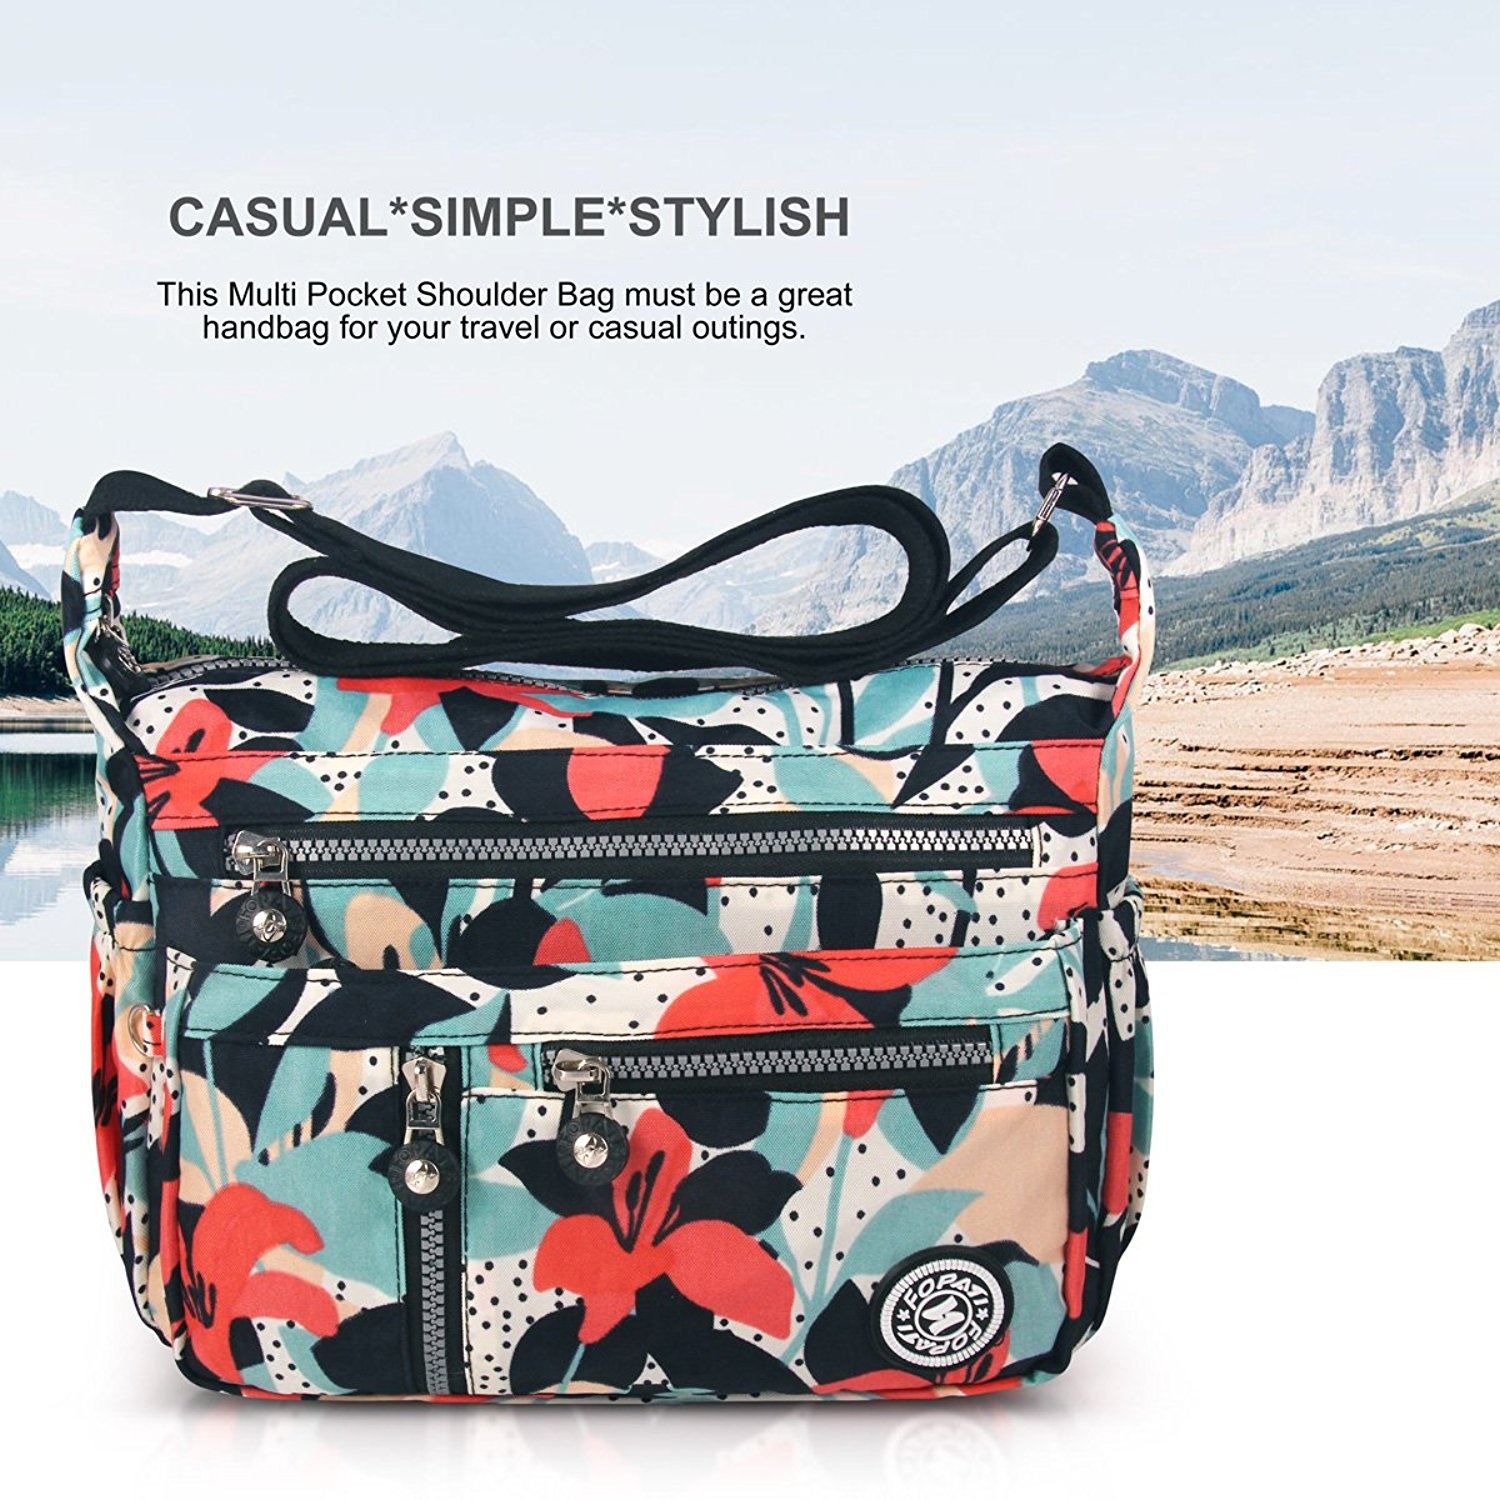 3babca5a9229 Share this product. Sign Up for Fishpond s Best Deals Delivered to You  Every Day. Go. ABLE Women Anti Splash Water Shoulder Messenger Crossbody  Bags